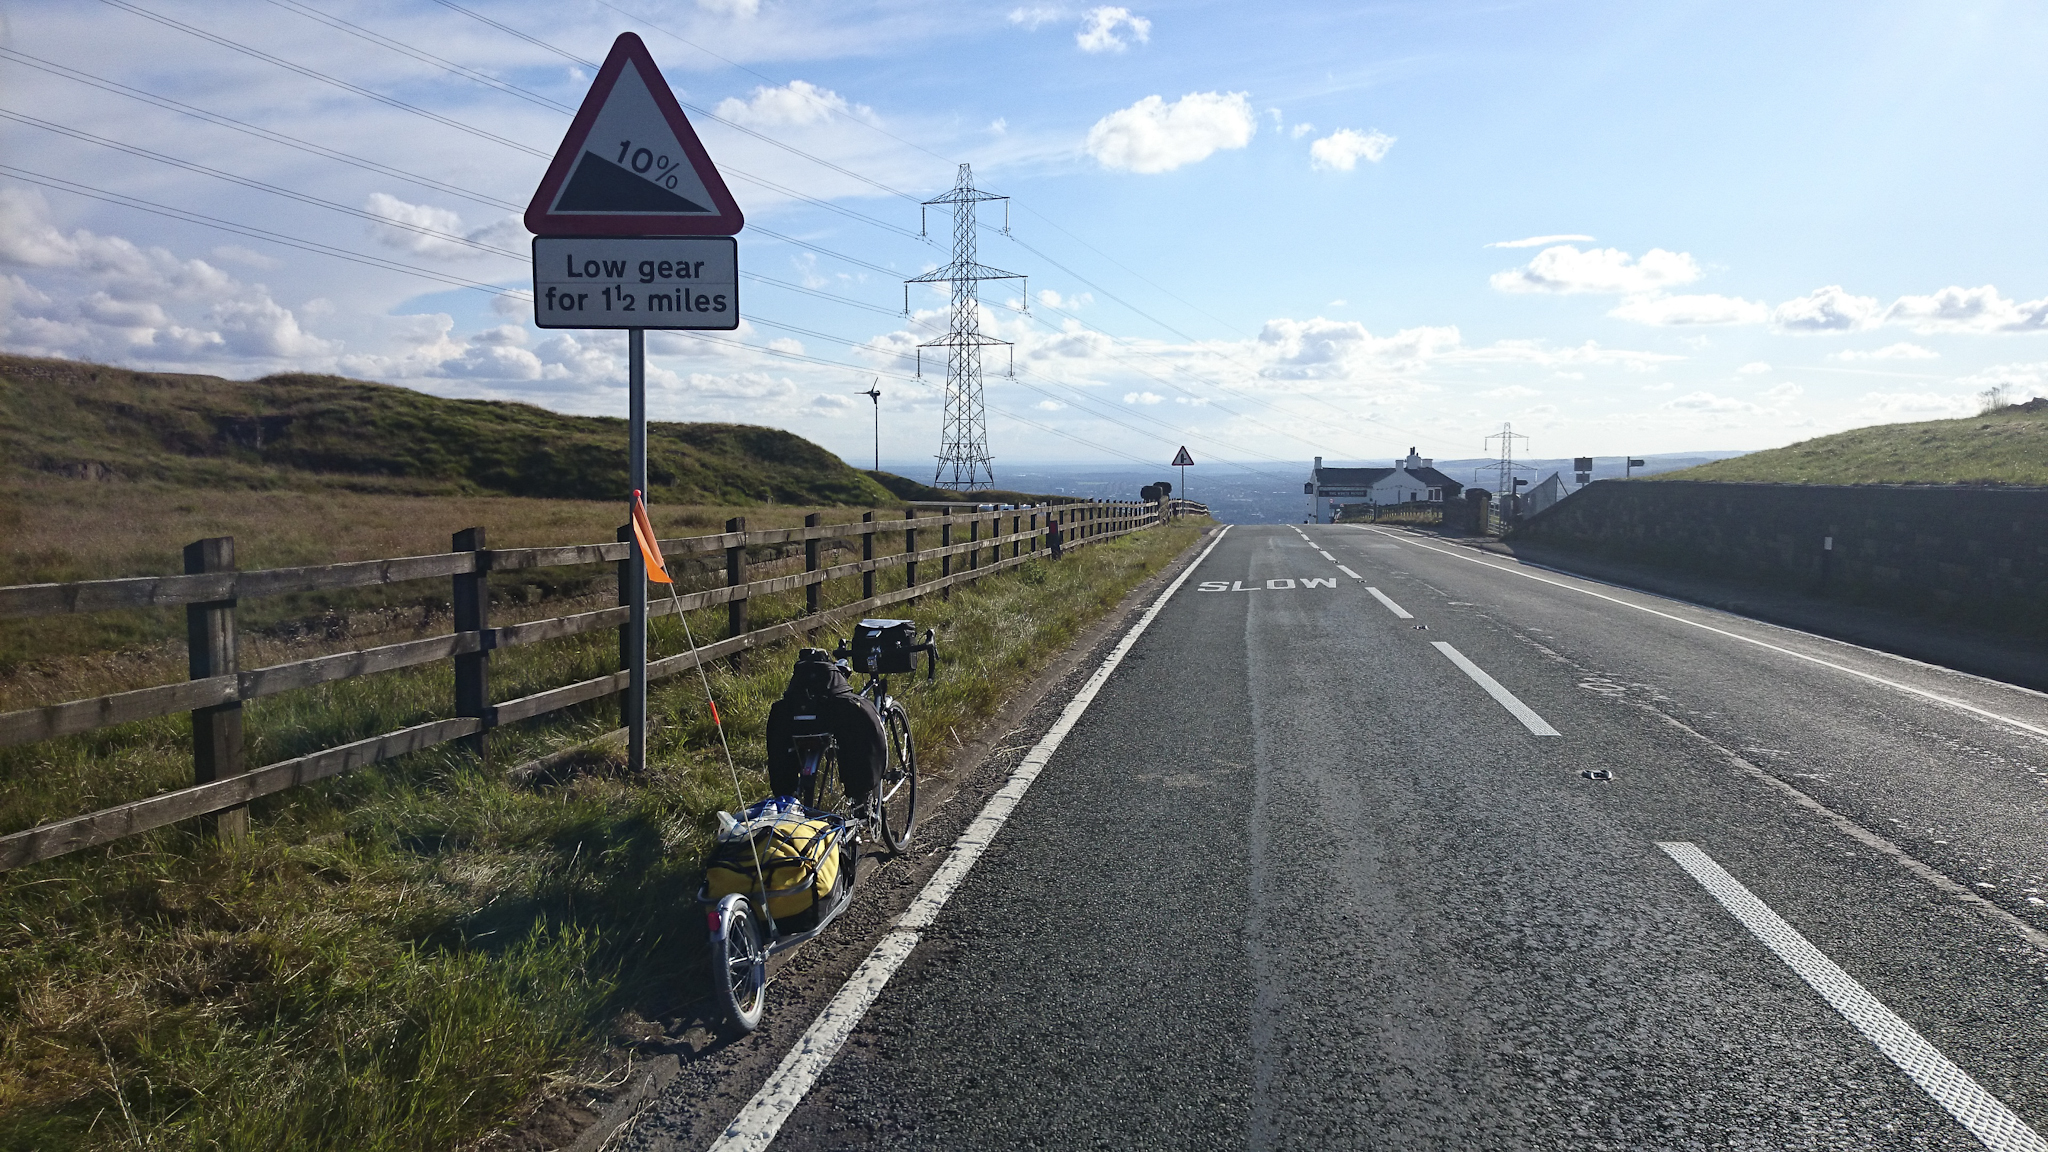 The top of the last big hill before descending to Littleborough, Rochdale, Manchester, Warrington and then home!